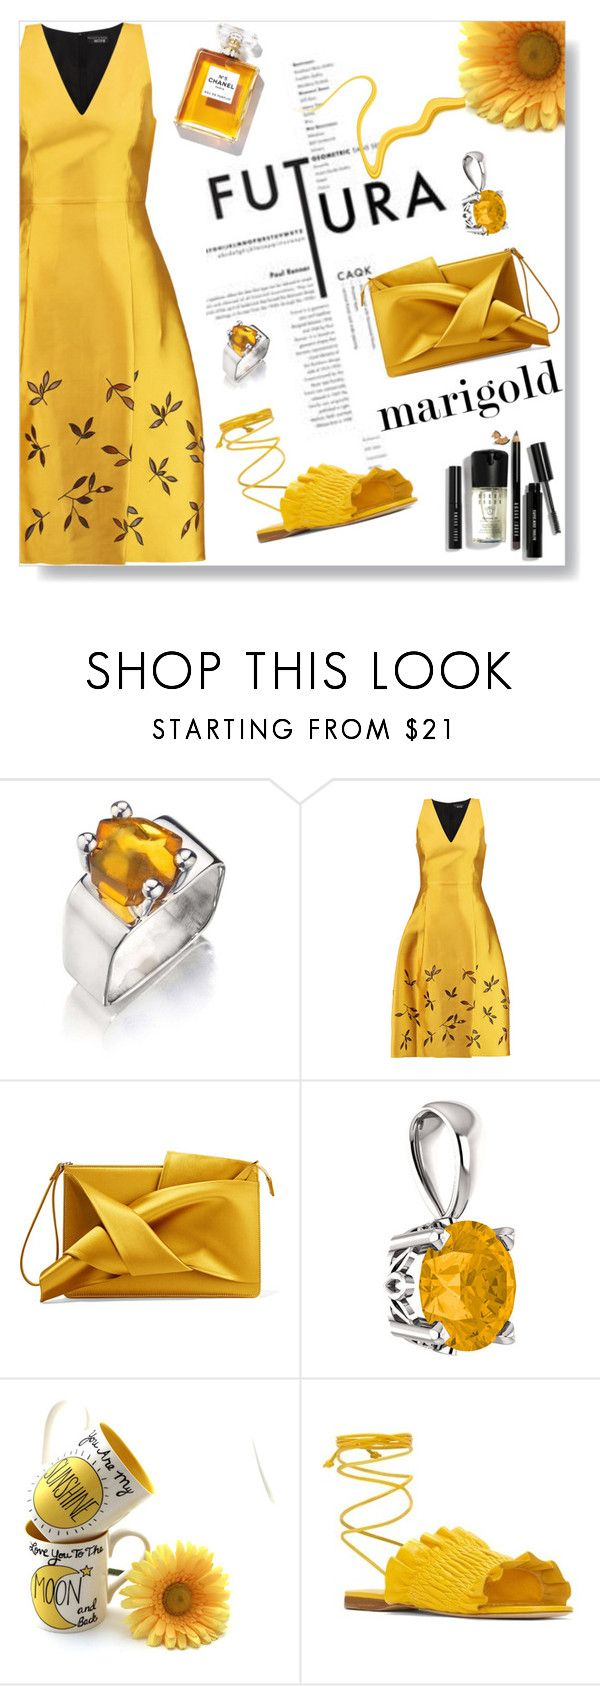 """Stay Golden: Dressing in Marigold"" by lacas ❤ liked on Polyvore featuring NOIR Sachin + Babi, N°21, Chanel, Mercedes Castillo, Bobbi Brown Cosmetics and marigold"